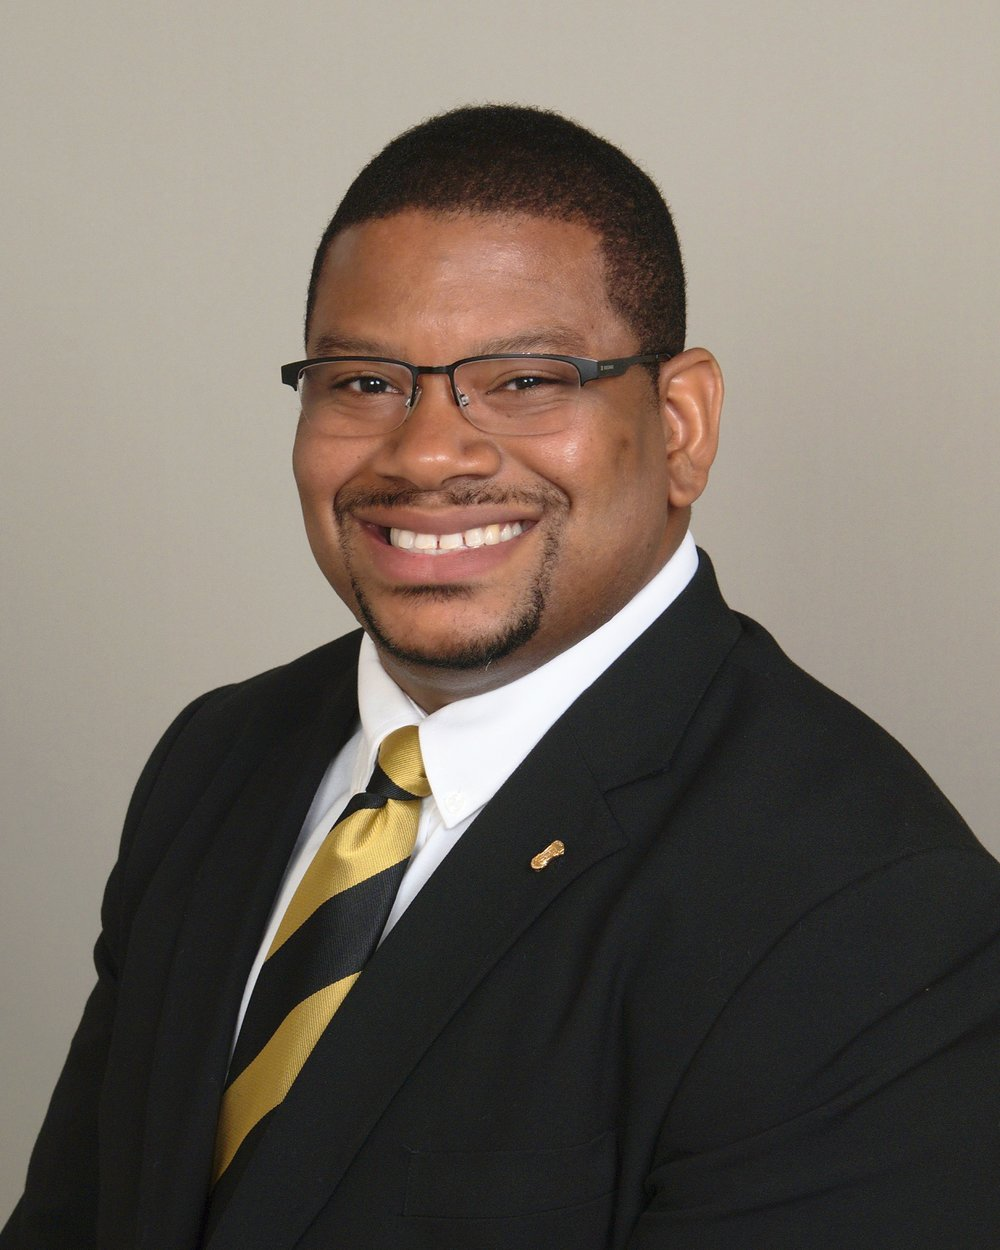 Ronald D. Stovall, Jr.  Candidate for Midwestern Regional Vice President